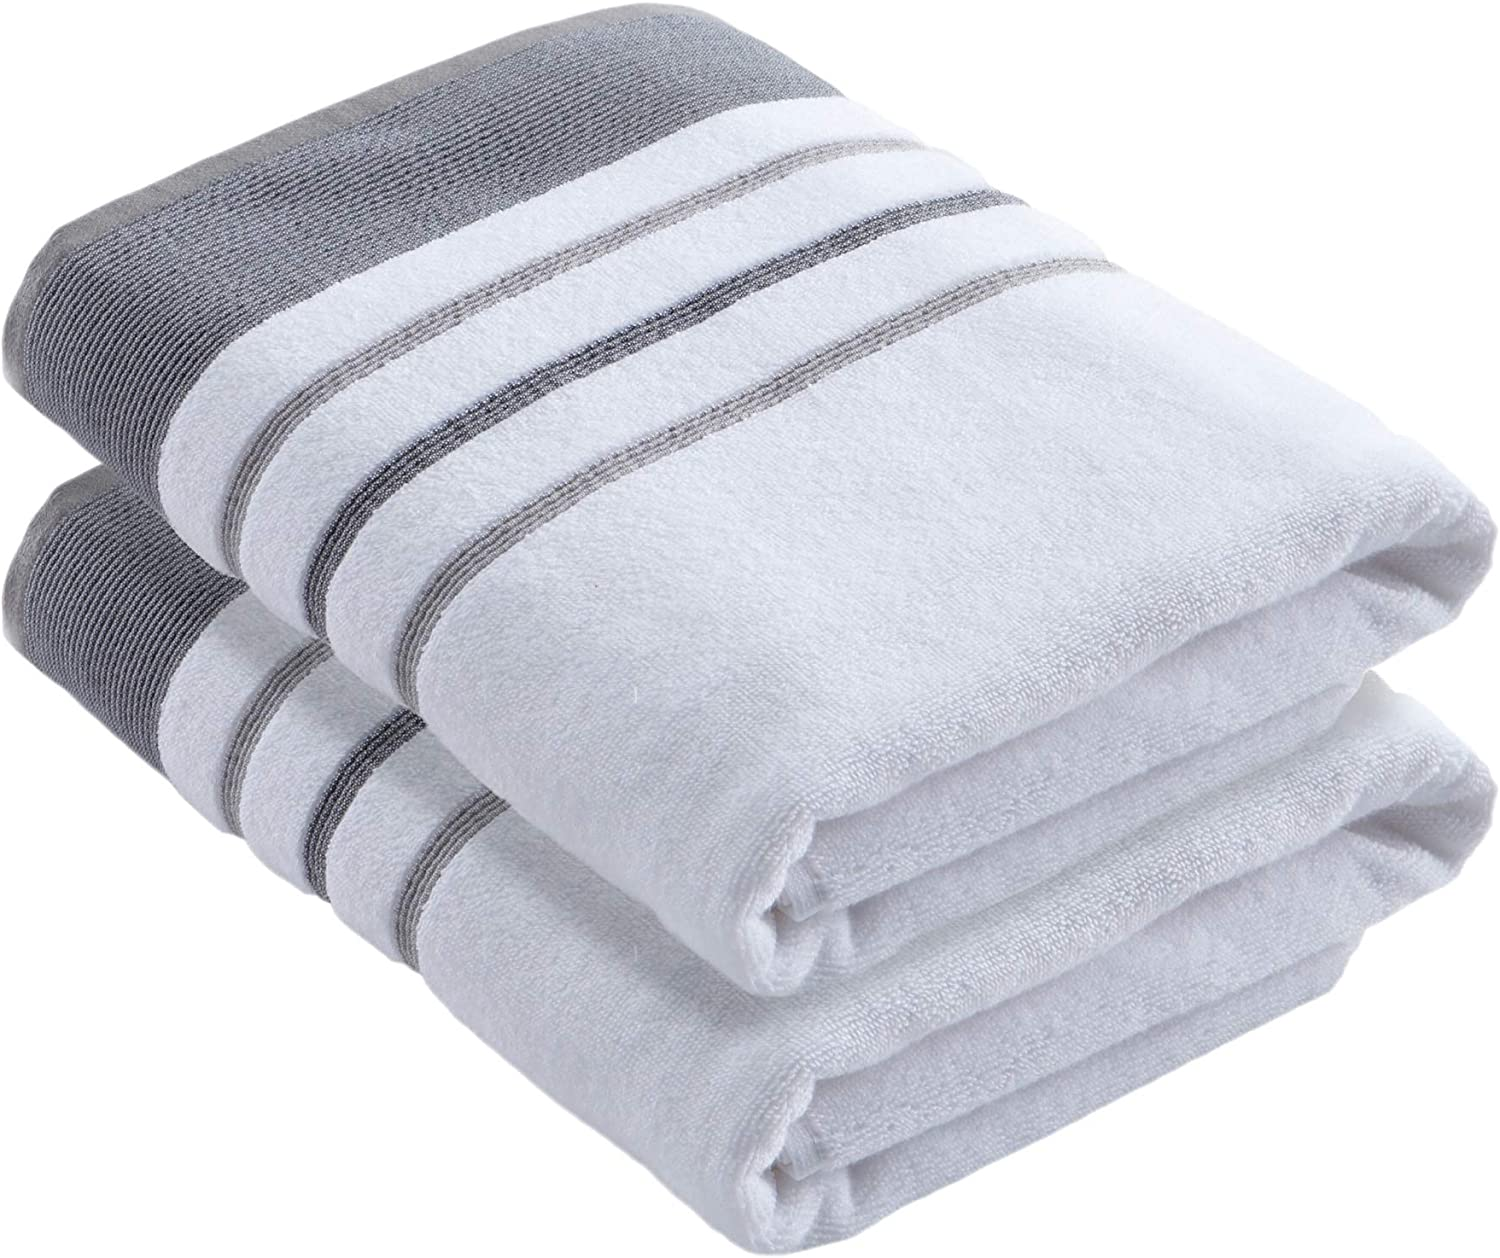 Turkish Cotton, Striped Bath Towel Set (30 x 54 inches) Oversized and Absorbent Luxury Quick-Dry Towels. Noelle Collection (Set of 2, Dark Grey / Light Grey)